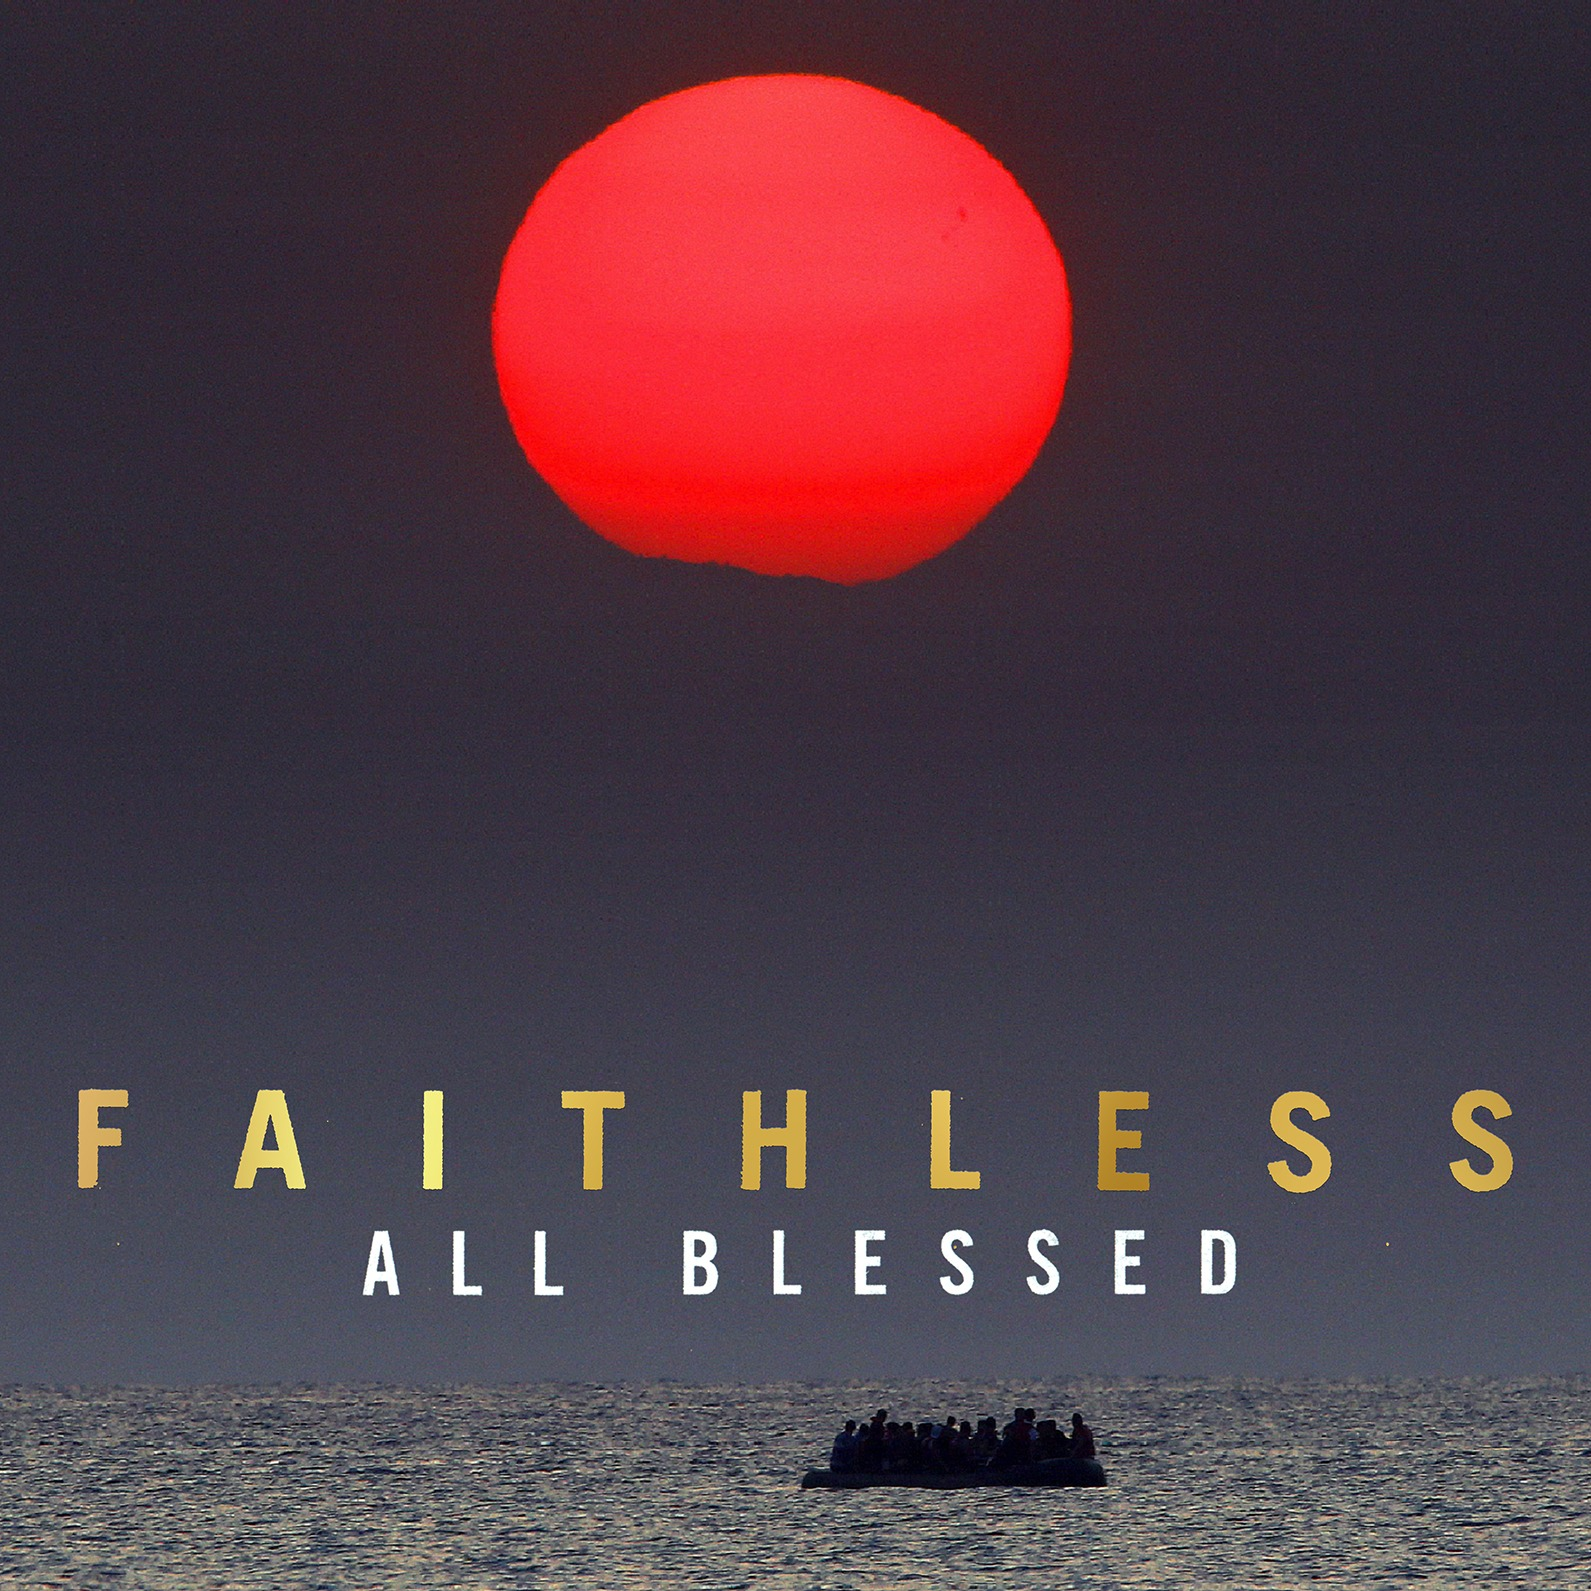 FAITHLESS announce their first new album in ten years, 'All Blessed' - Out 23 October